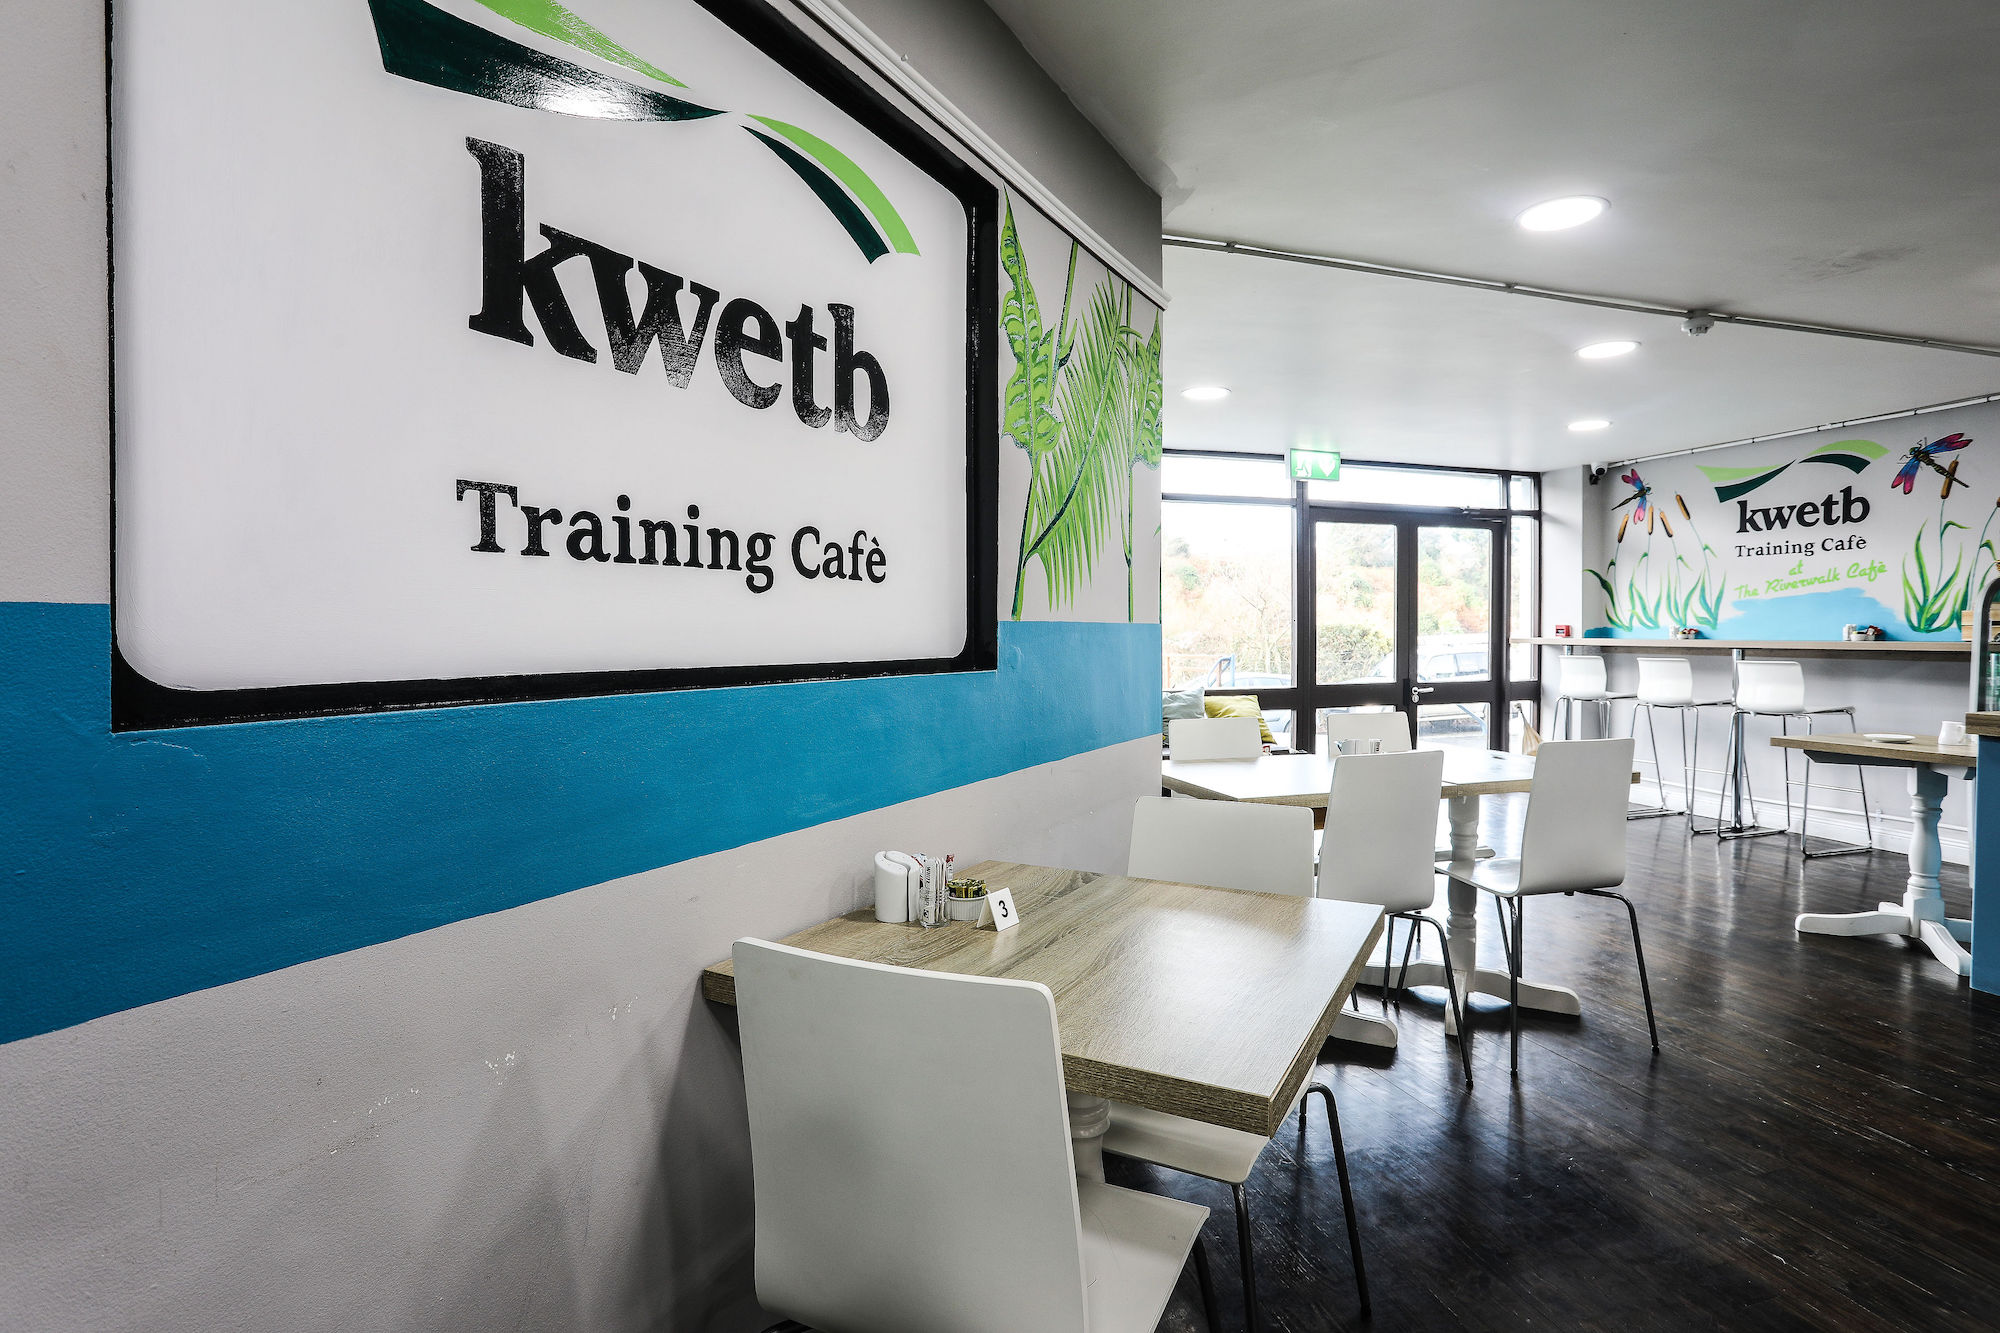 A training café - that is open to the public, allowing learners to experience what it is like to work in a functioning cafe from opening to closing time.